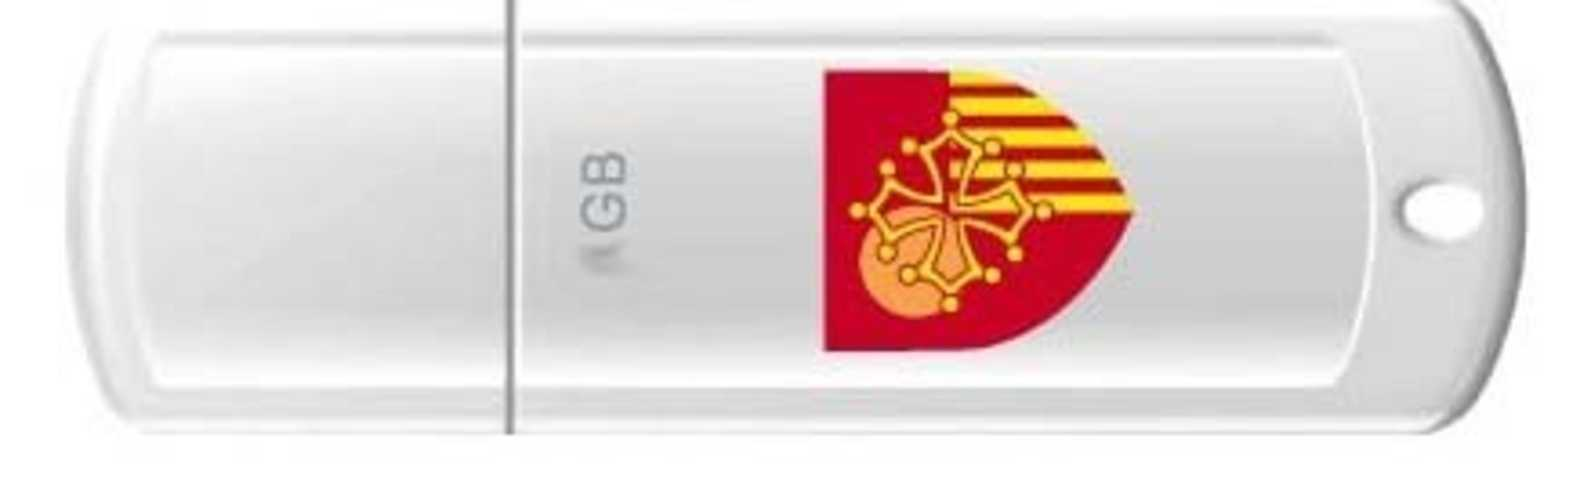 CLE USB 8 GO SERIE 370 BLANC USB 2.0 LOGO LANGUEDOC ROUSSILLON 0